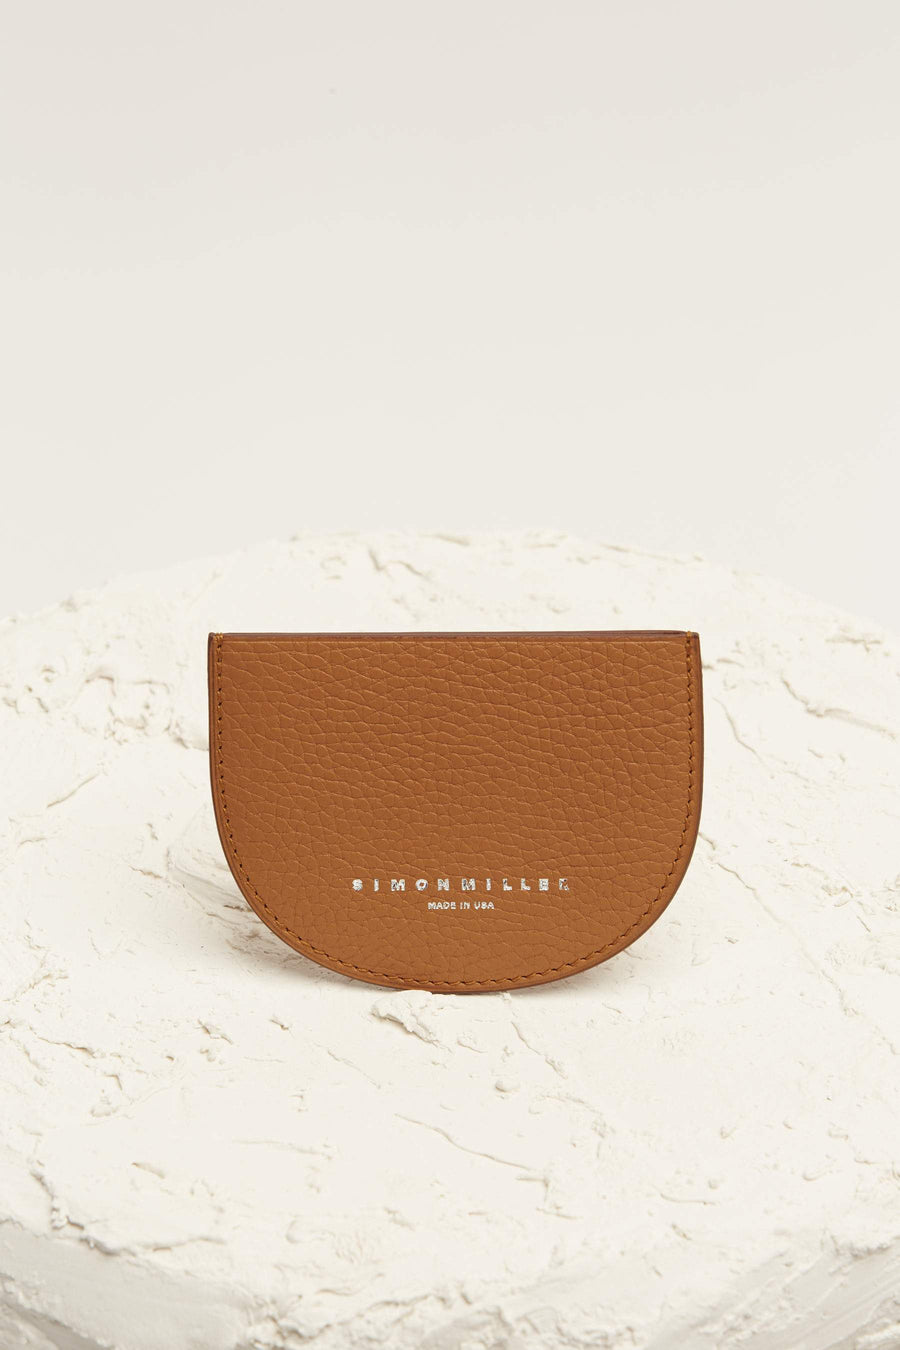 S823 Leather Cardholder in Toffee